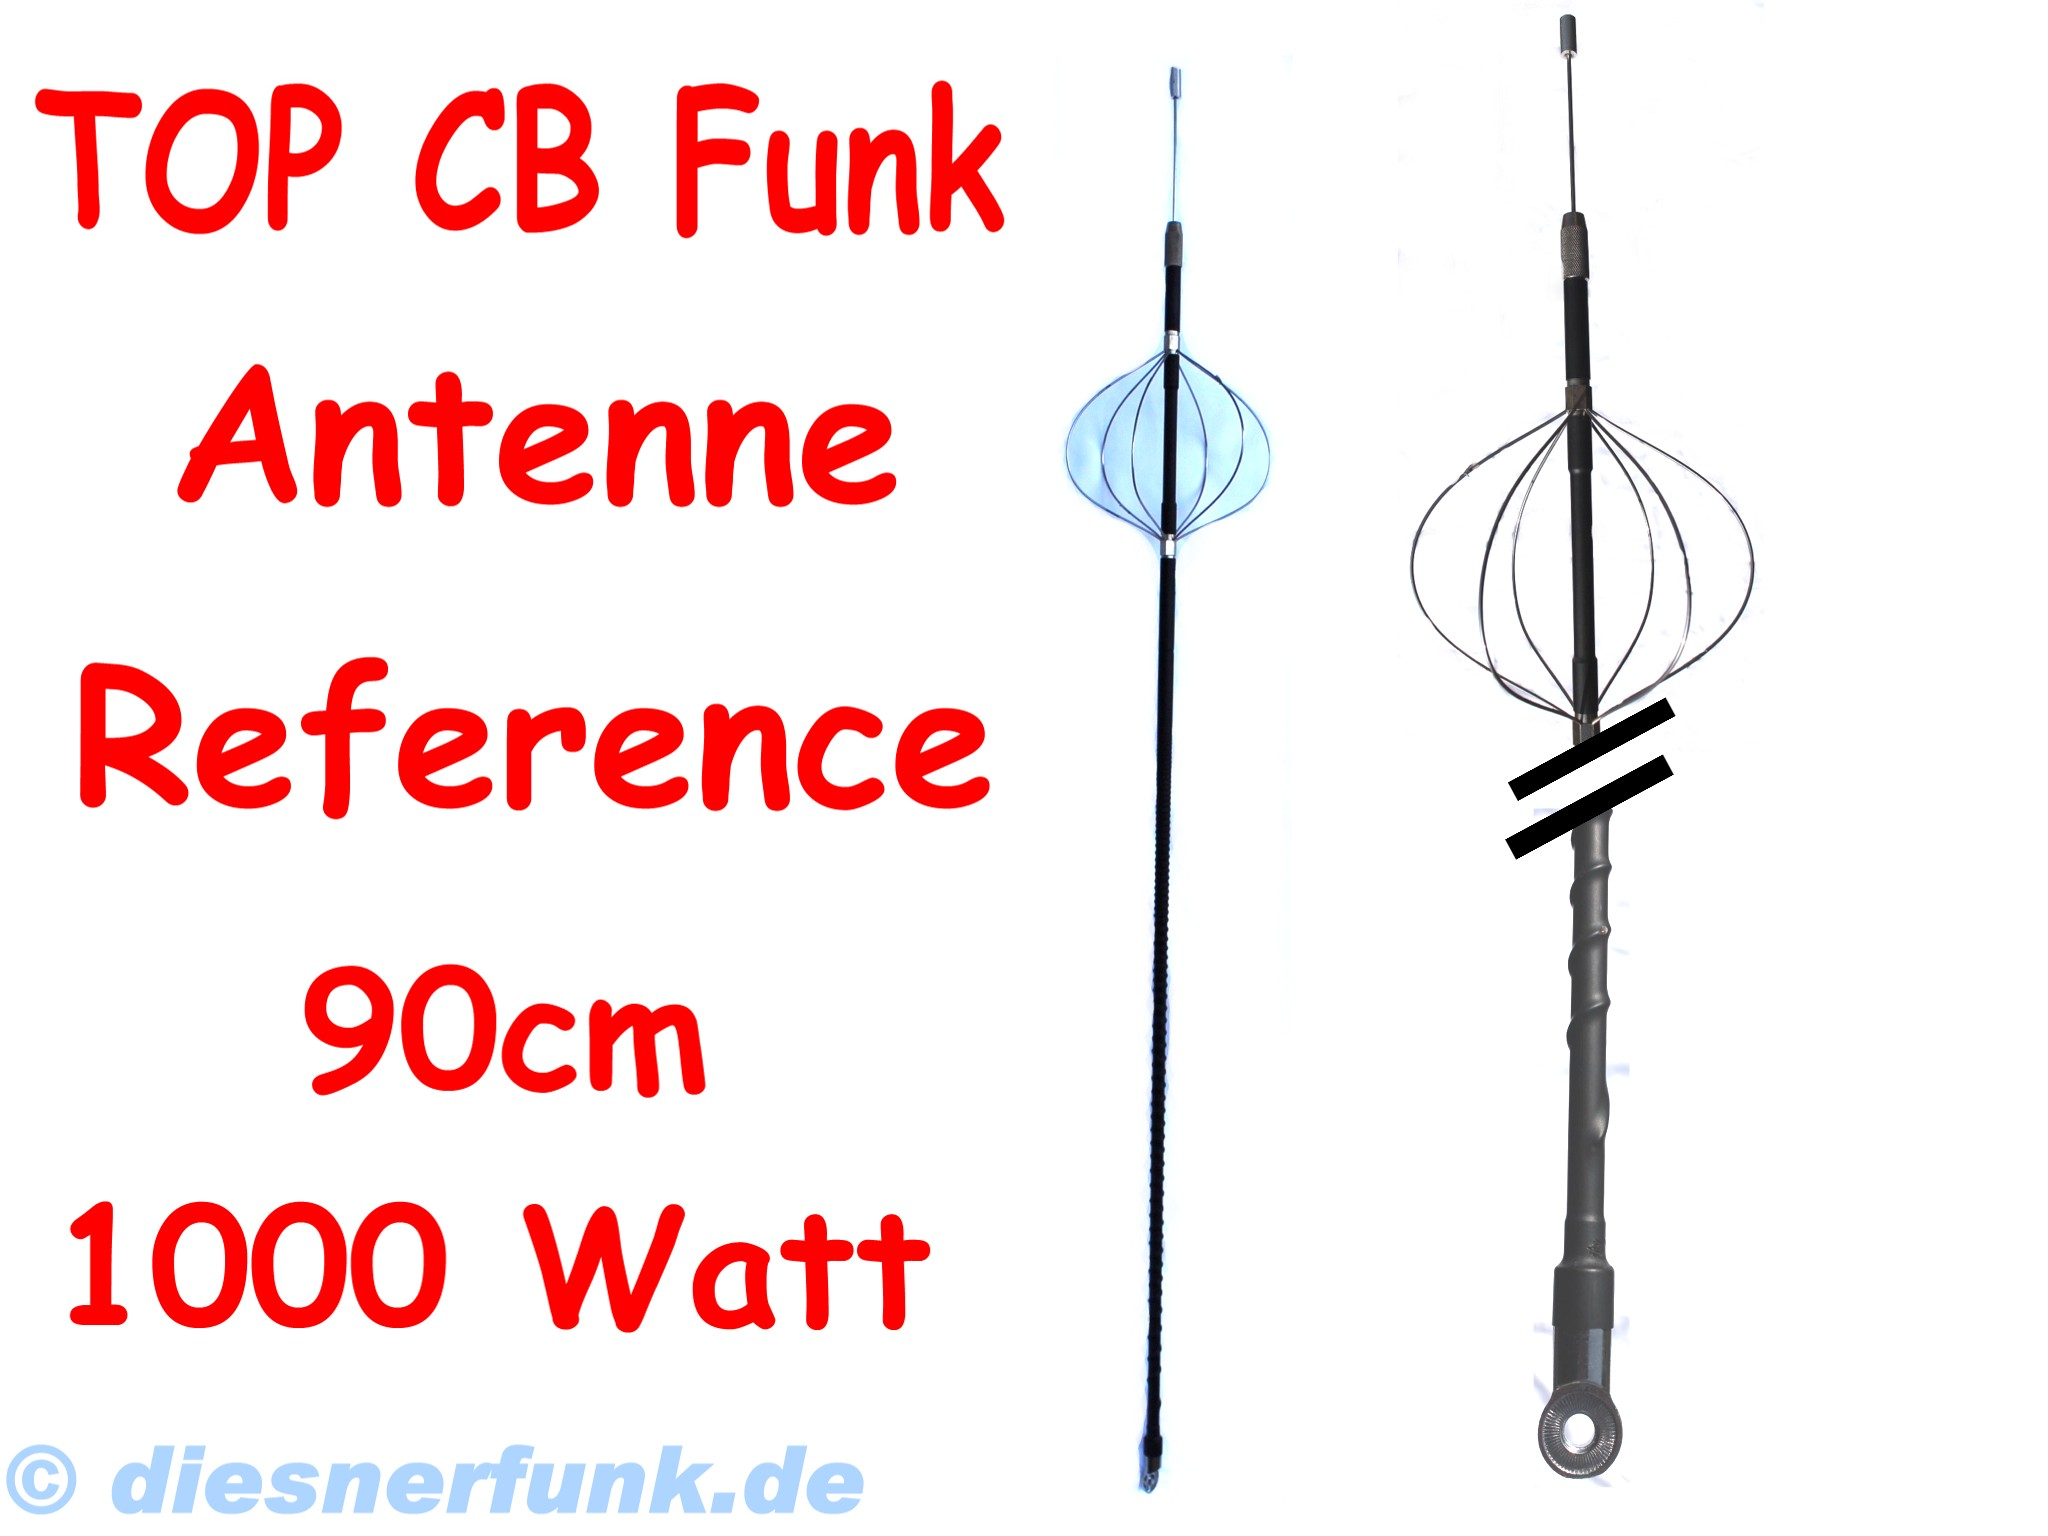 cb funk dv 27 antennenstrahler albrecht 90cm 1000watt top. Black Bedroom Furniture Sets. Home Design Ideas